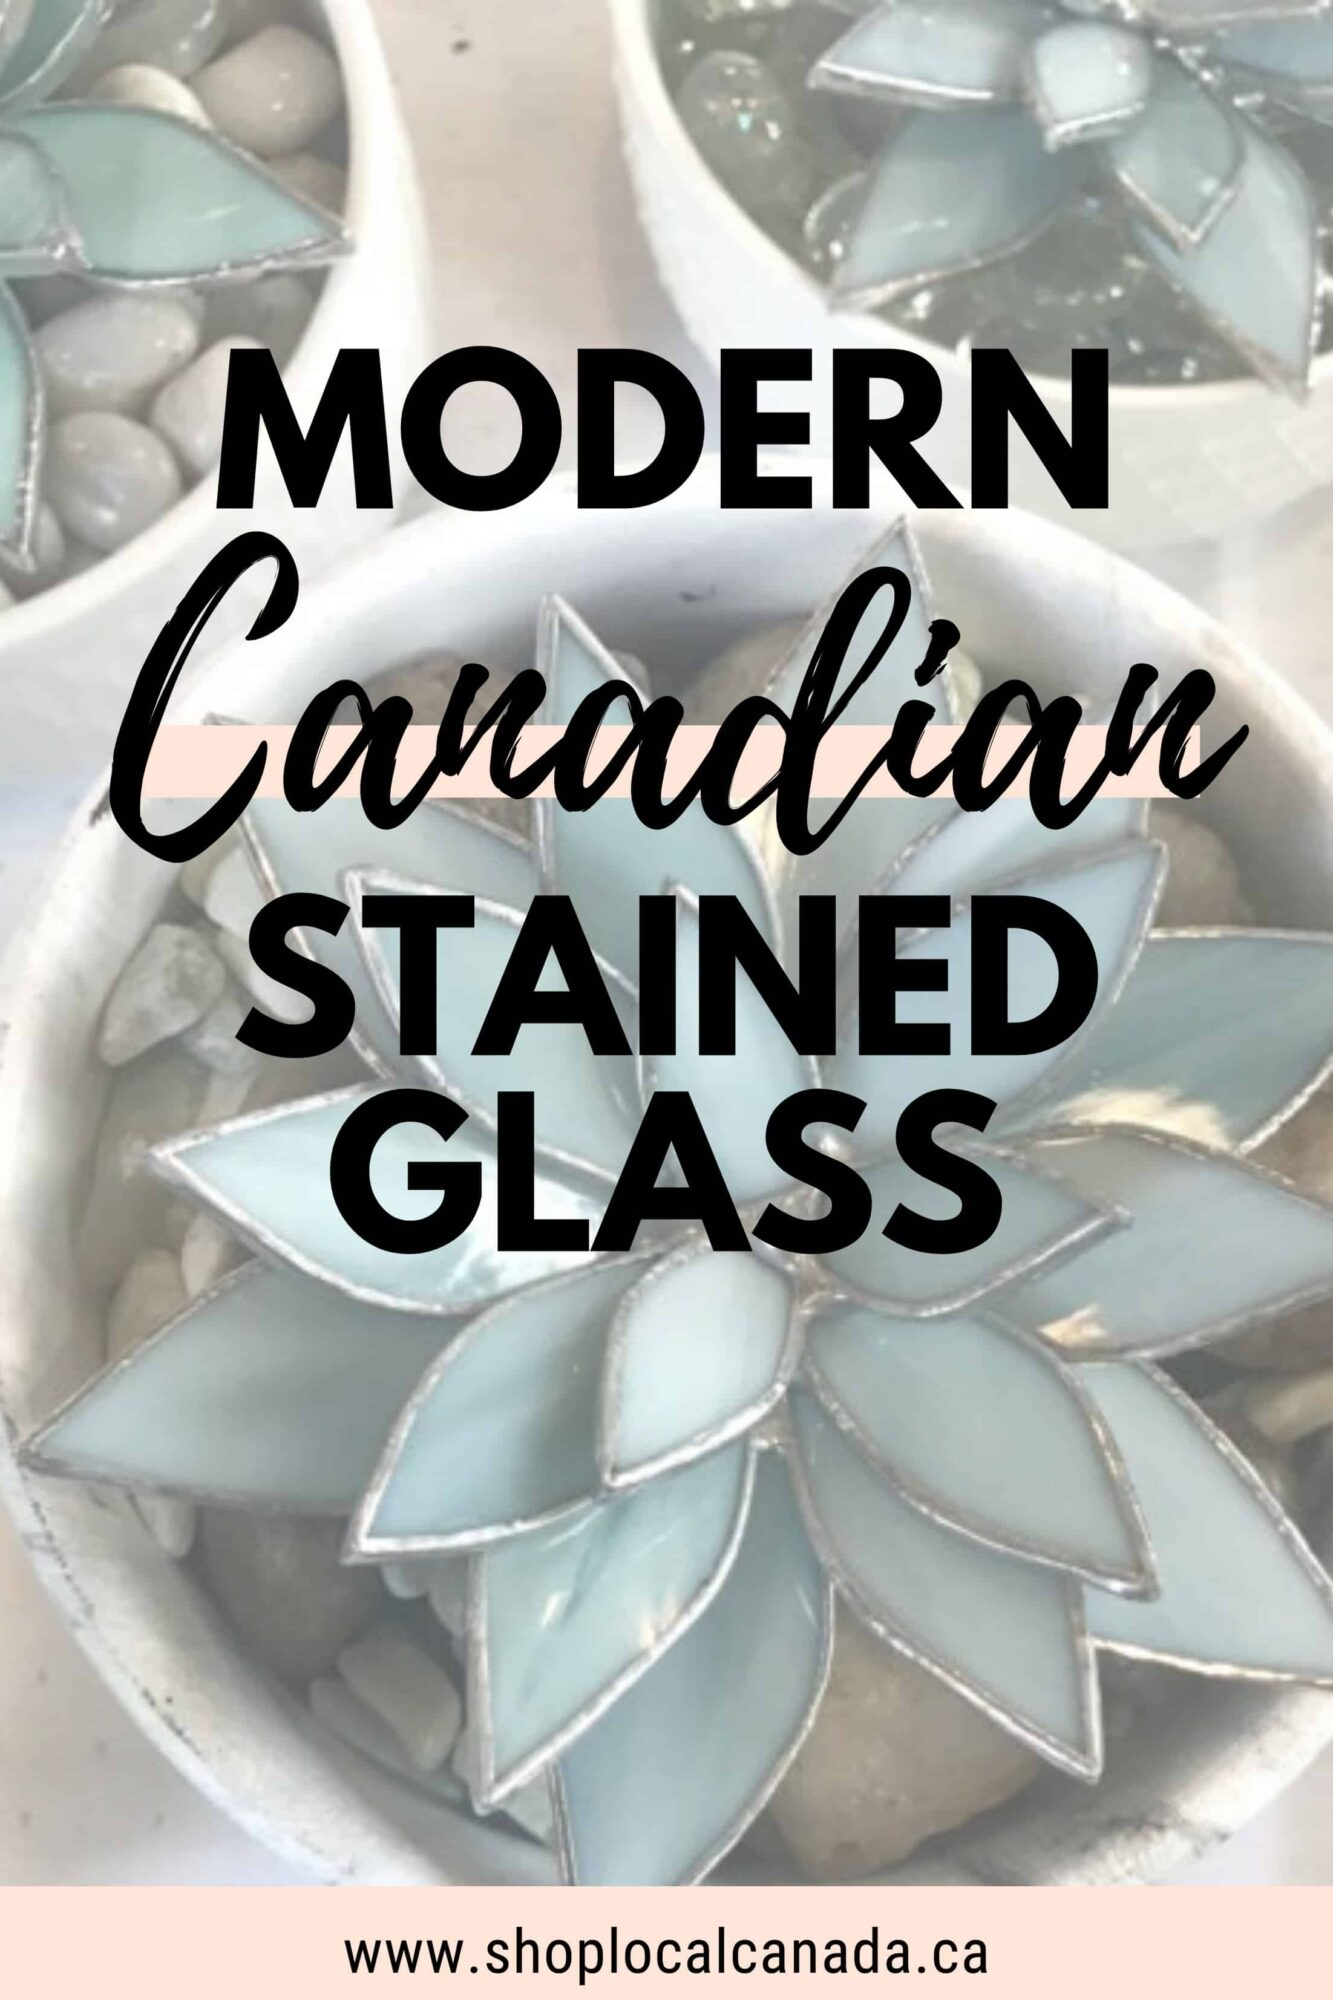 Modern Canadian Stained Glass